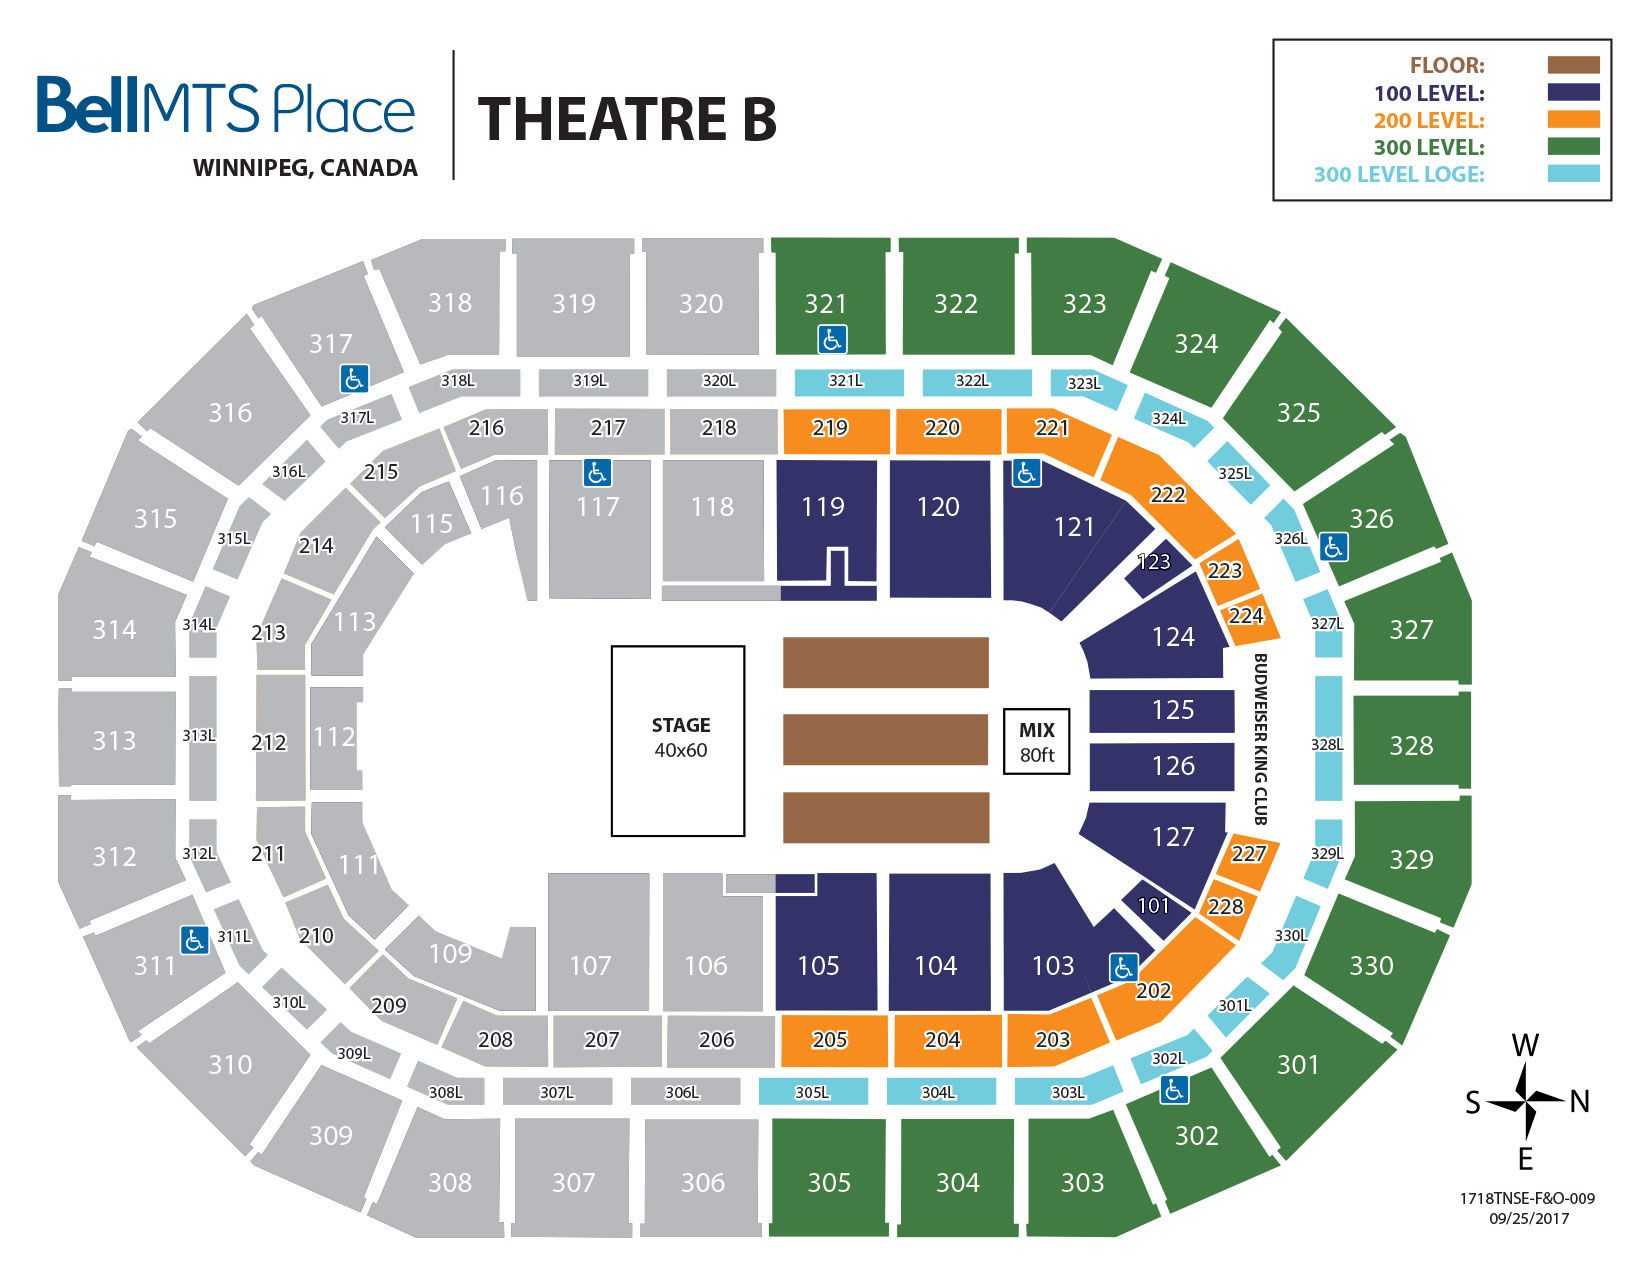 Bell MTS Place - Theatre B Seating